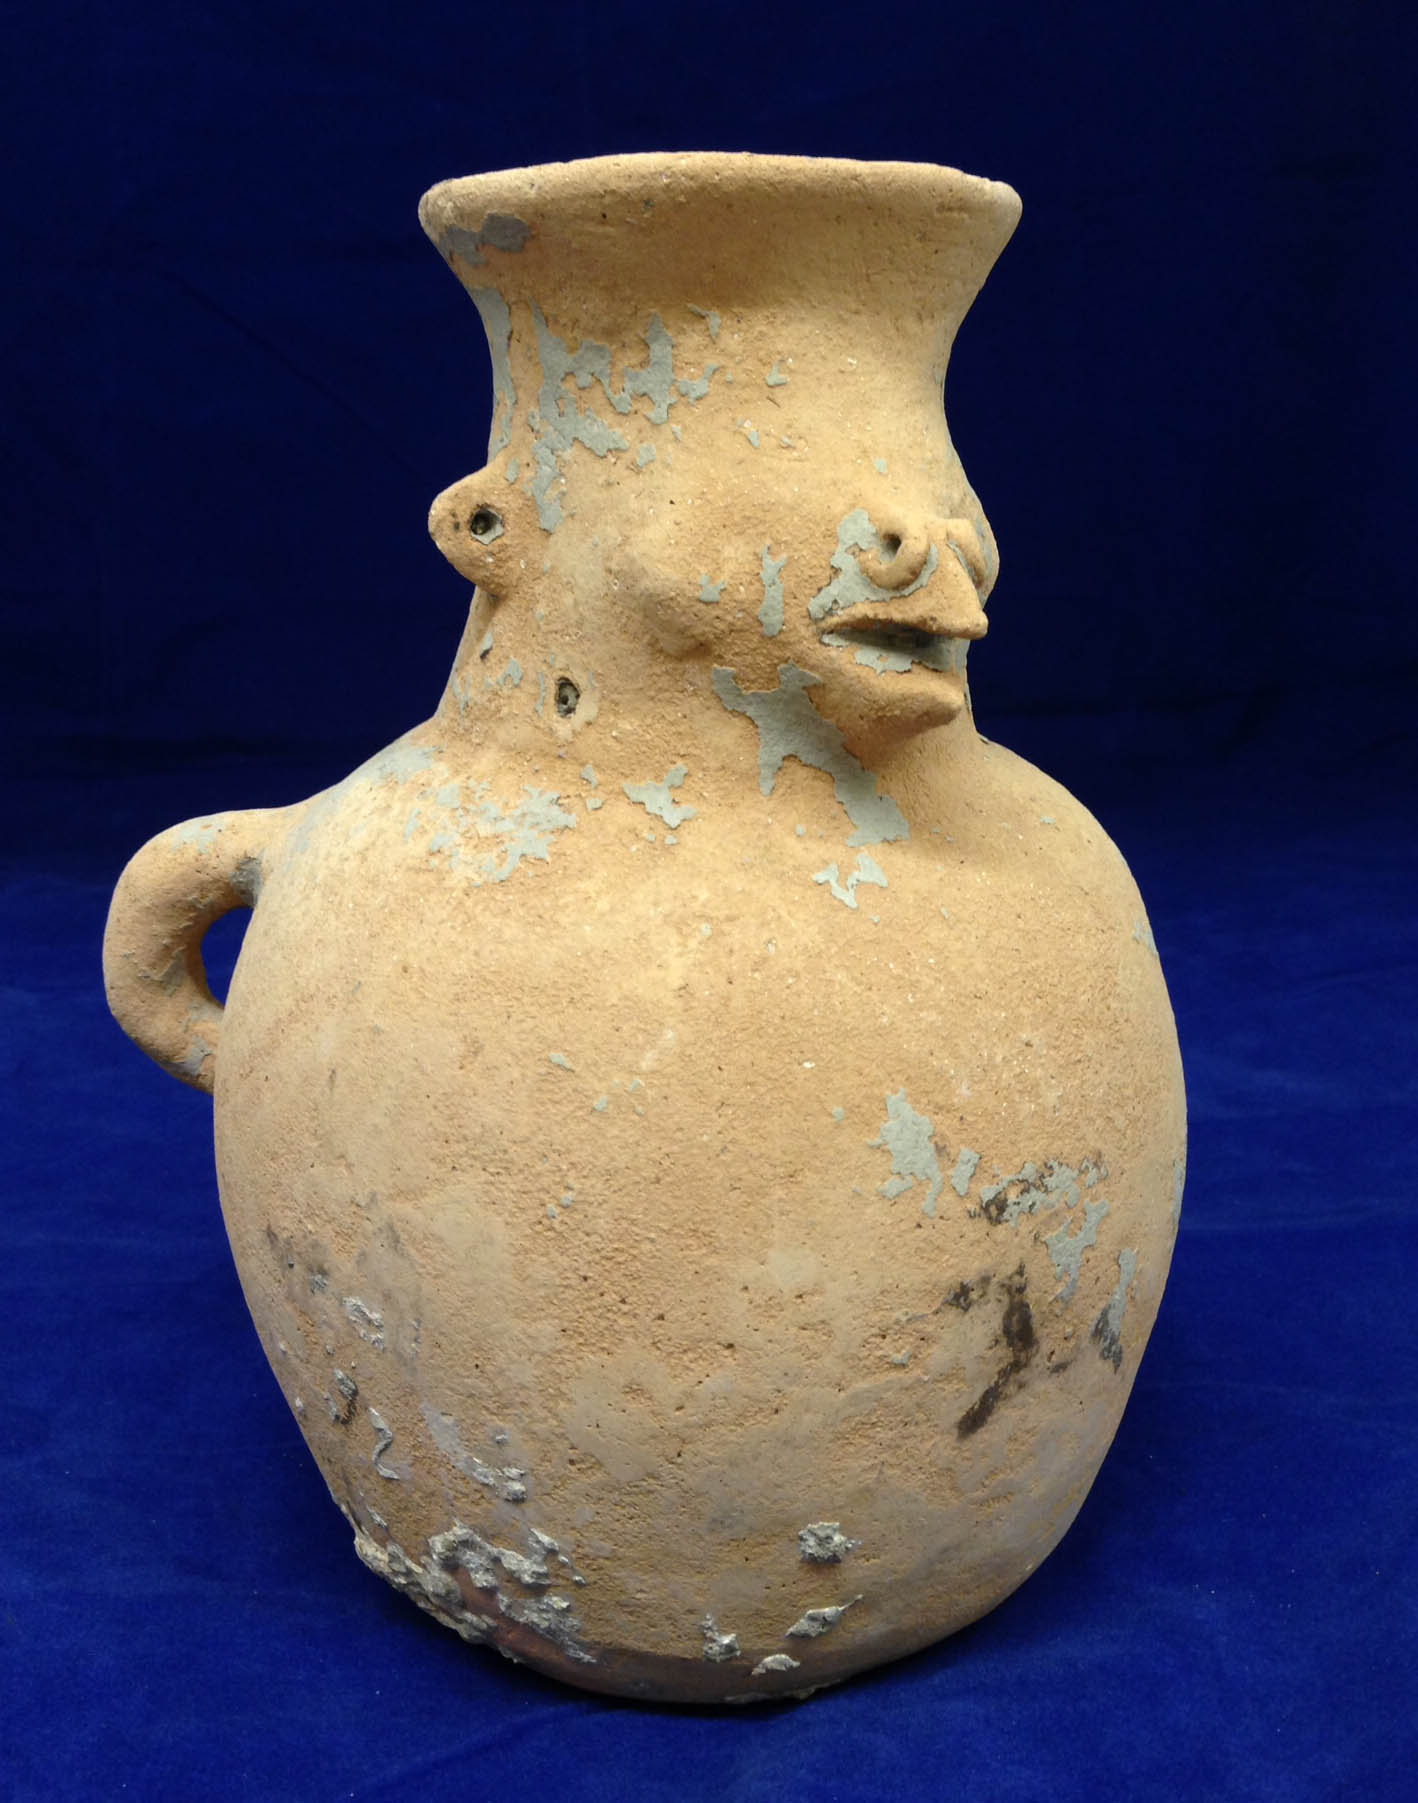 Mesoamerican Ceramic Vessels, Researched by Caitlin Baker, Charles Andrew Corbett, and Logan Williams